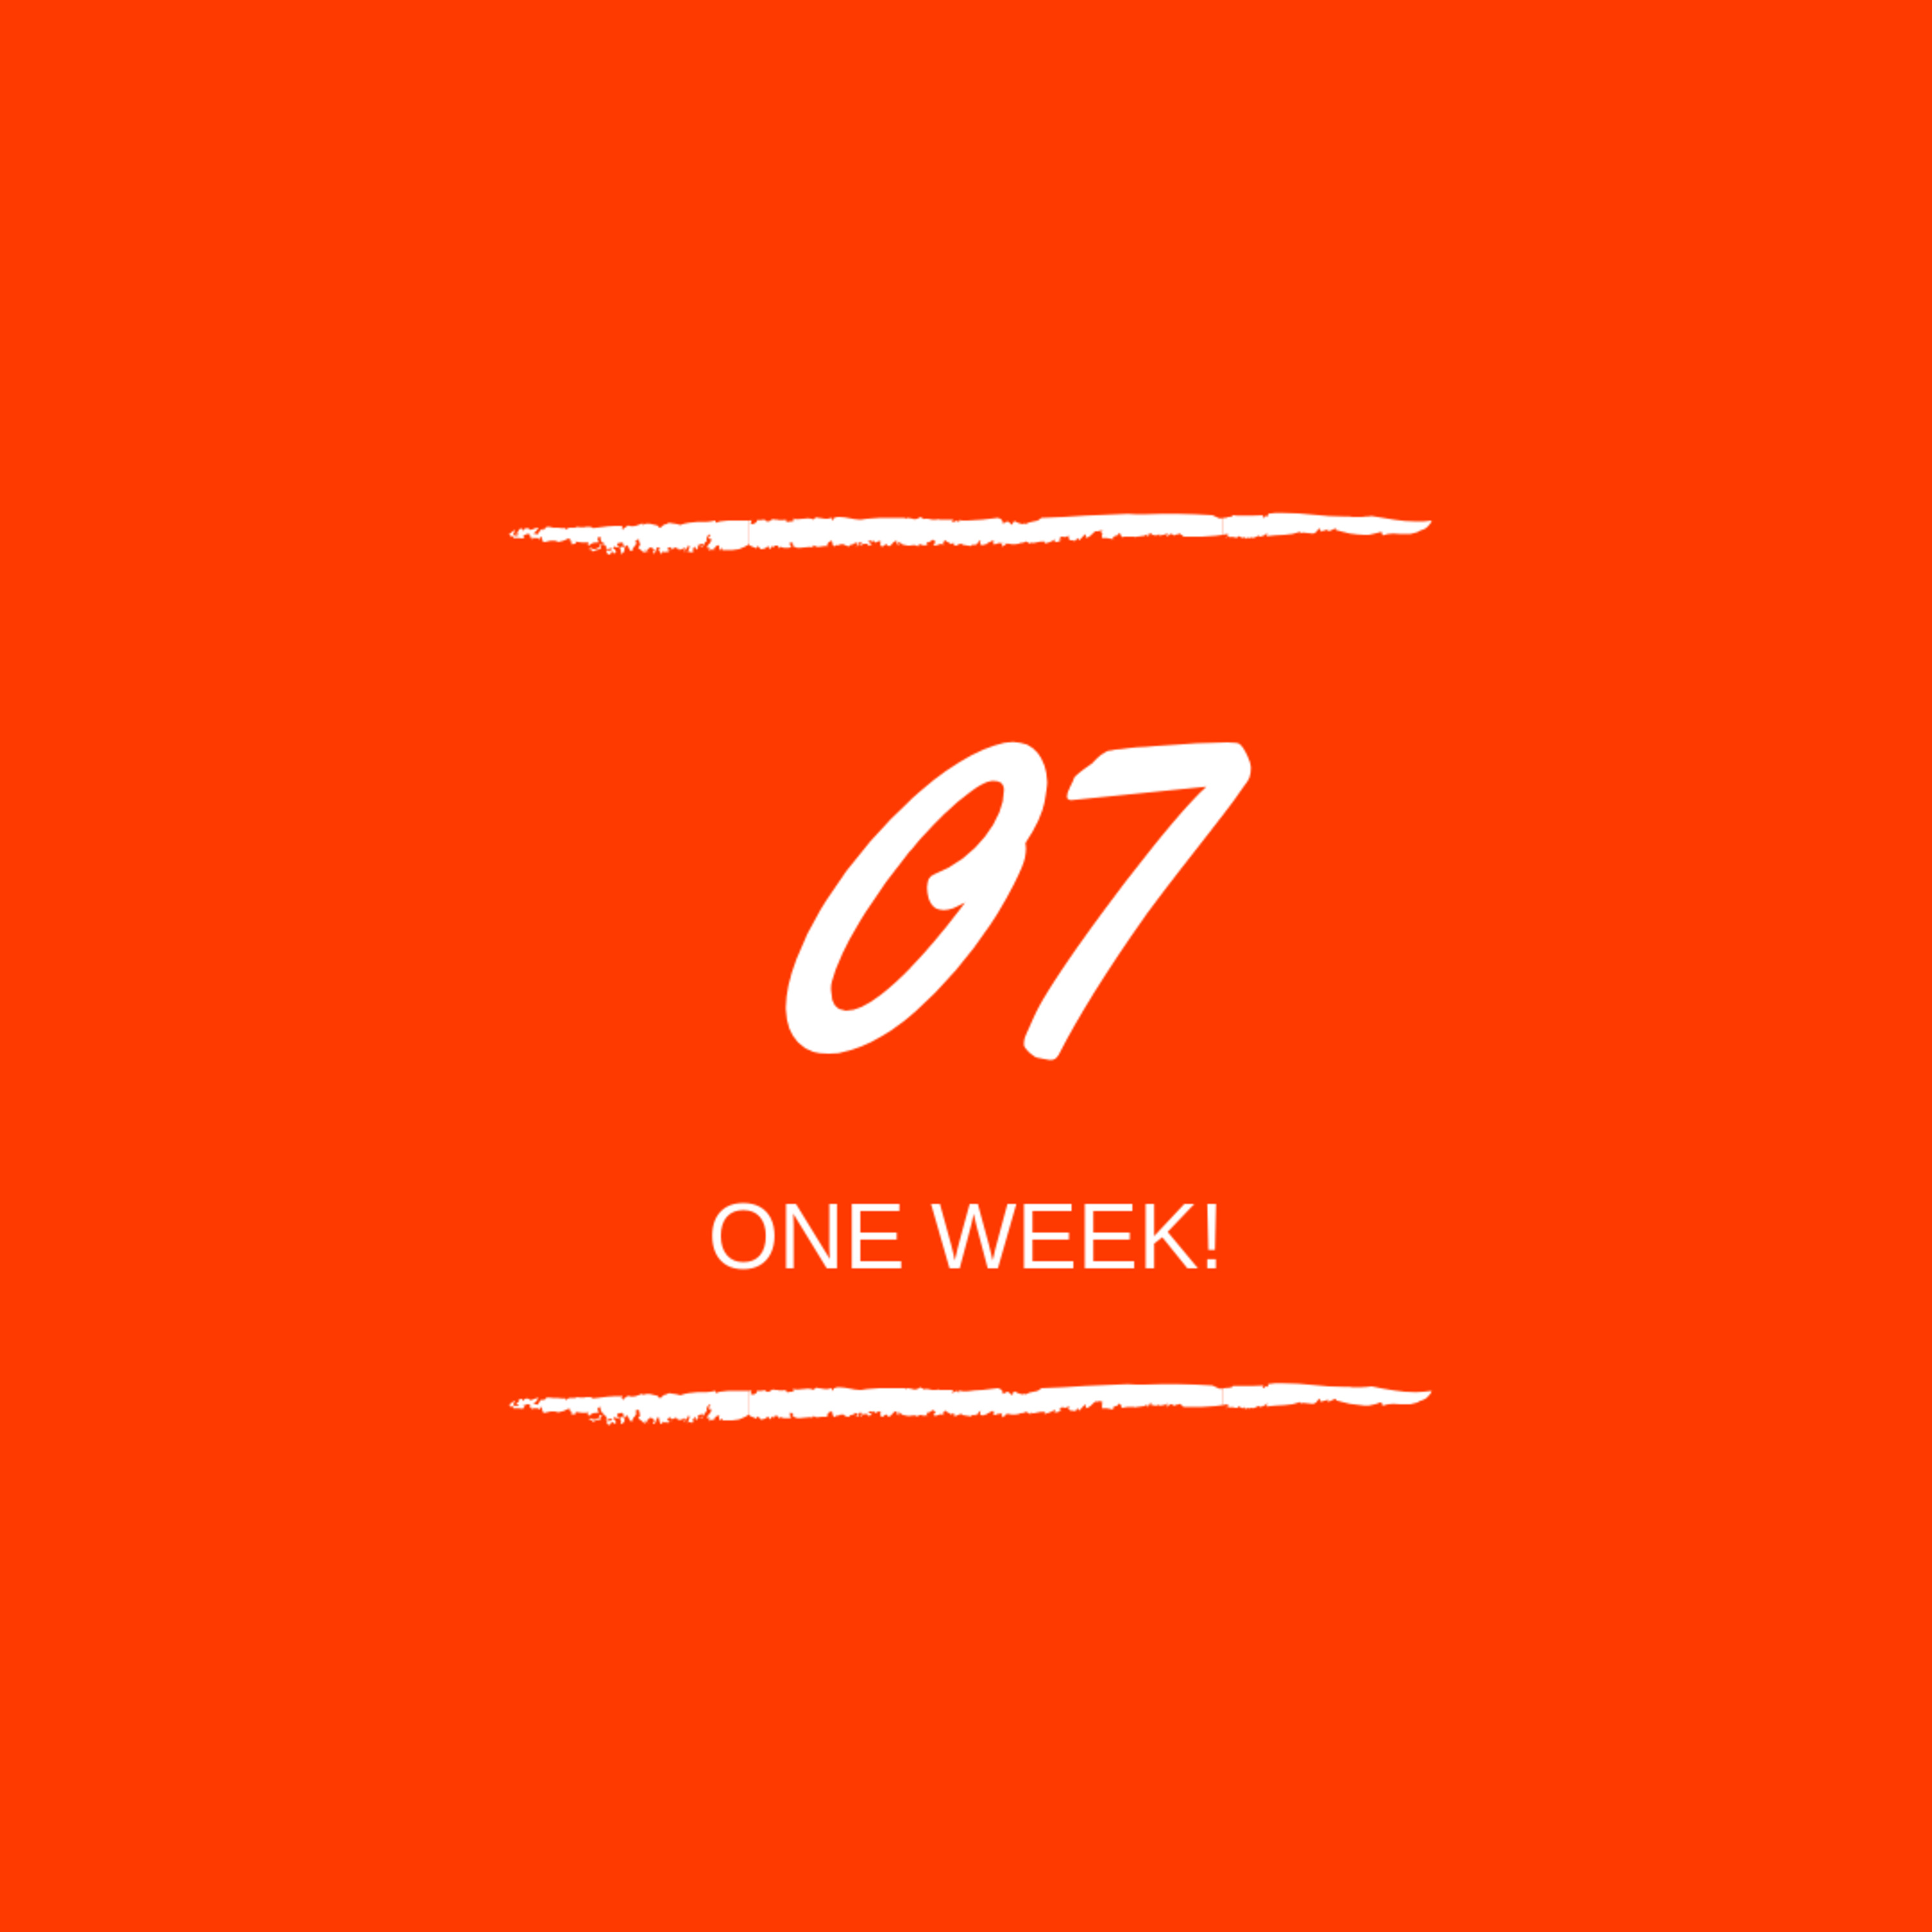 Day 07 : 🎉 One Week!